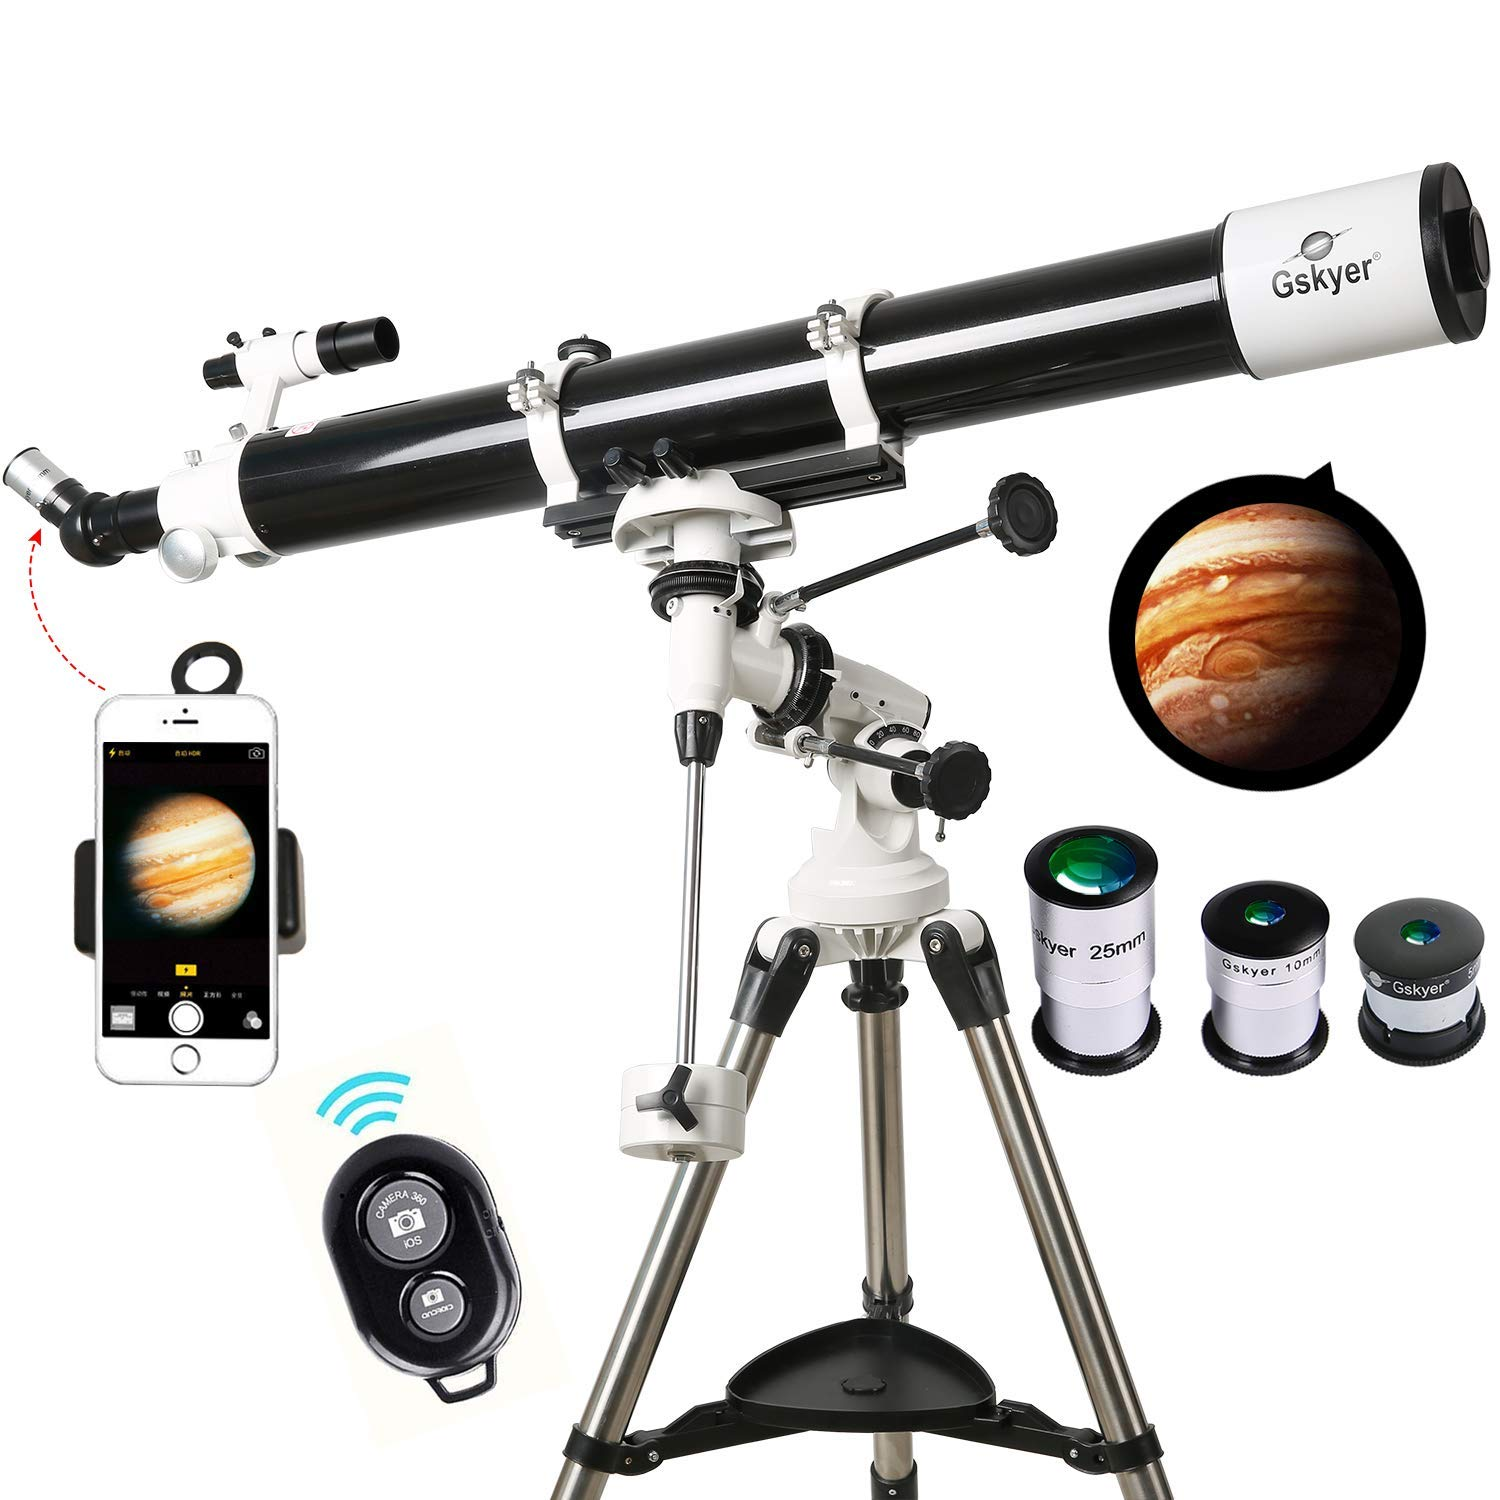 Gskyer Telescope, EQ901000 Astronomy Telescope, German Technology Refractor Telescope (Renewed) by Gskyer